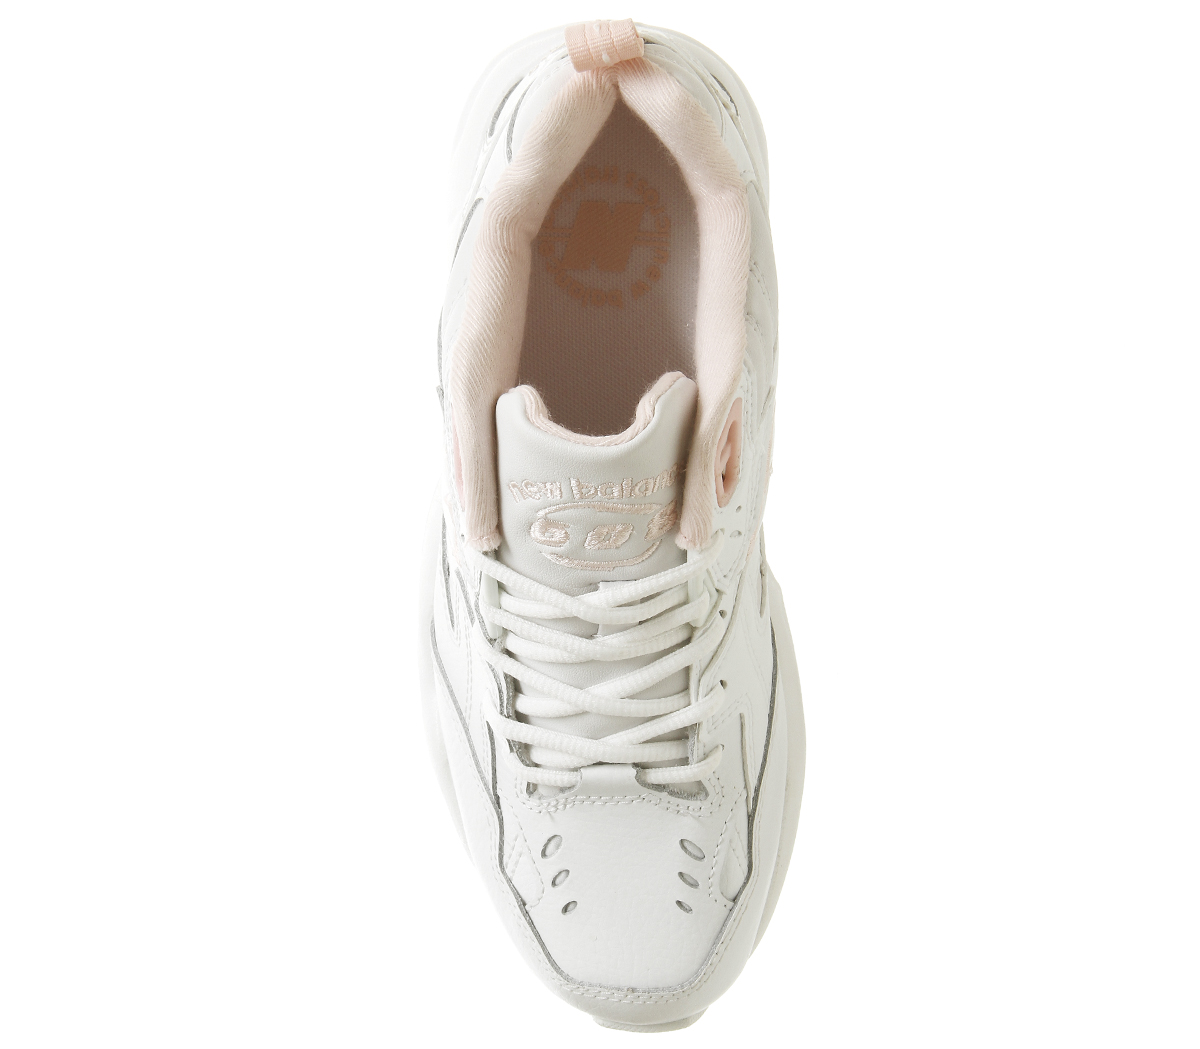 90a879000e145 Womens New Balance 608 Trainers Cream Pink Trainers Shoes | eBay